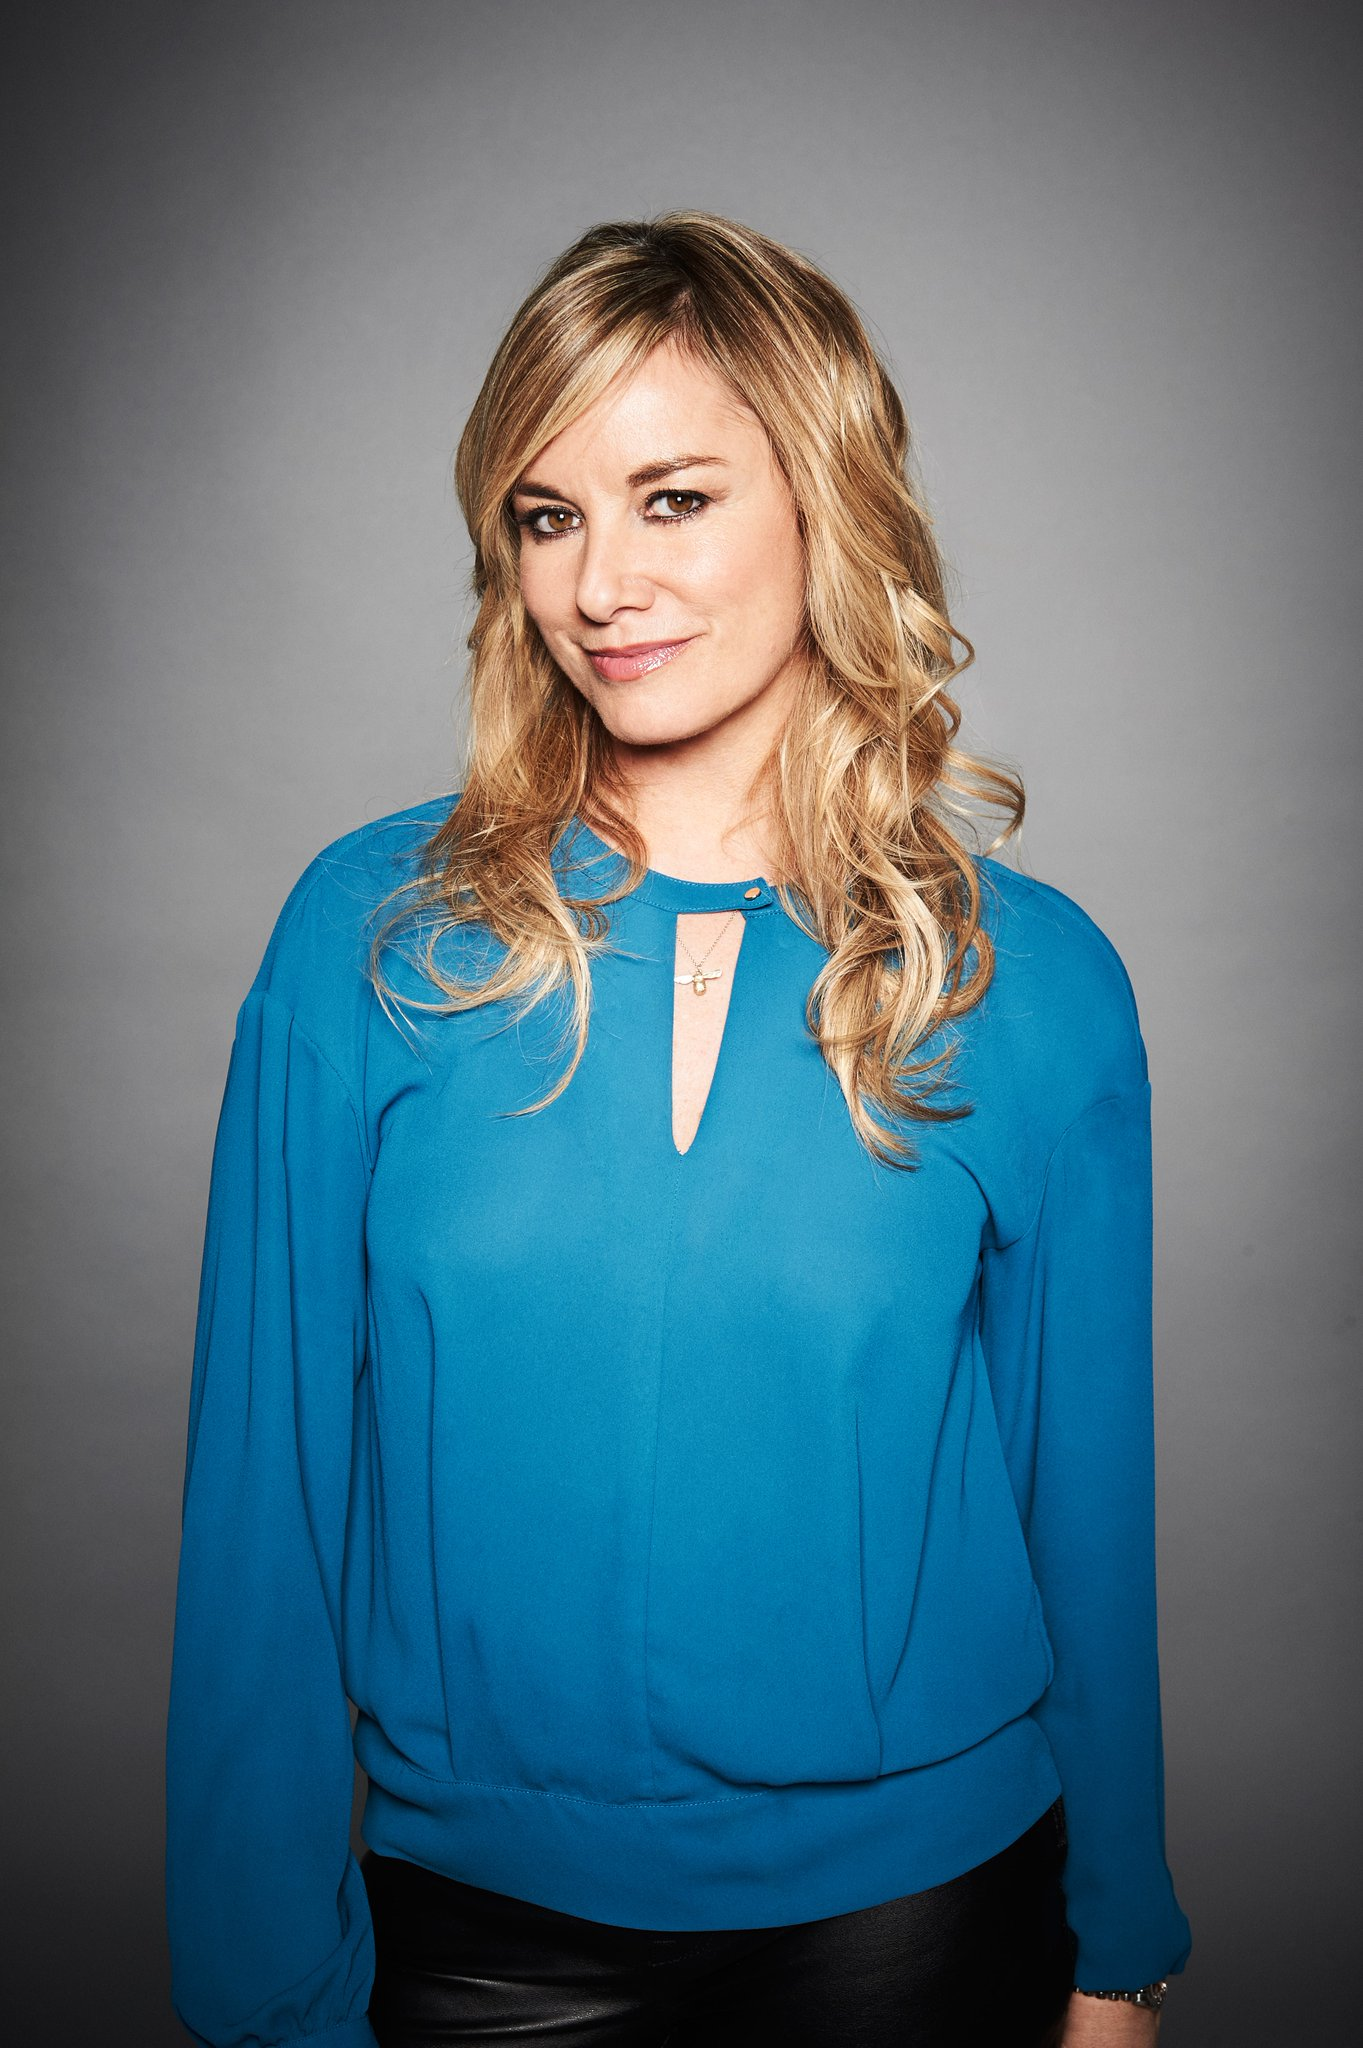 RT @DiscoveryIDUK: Catch up with @mouthwaite tonight on ID from 6 till 9! #Dateline with Tamzin Outhwaite! https://t.co/0HwcCE4sdV